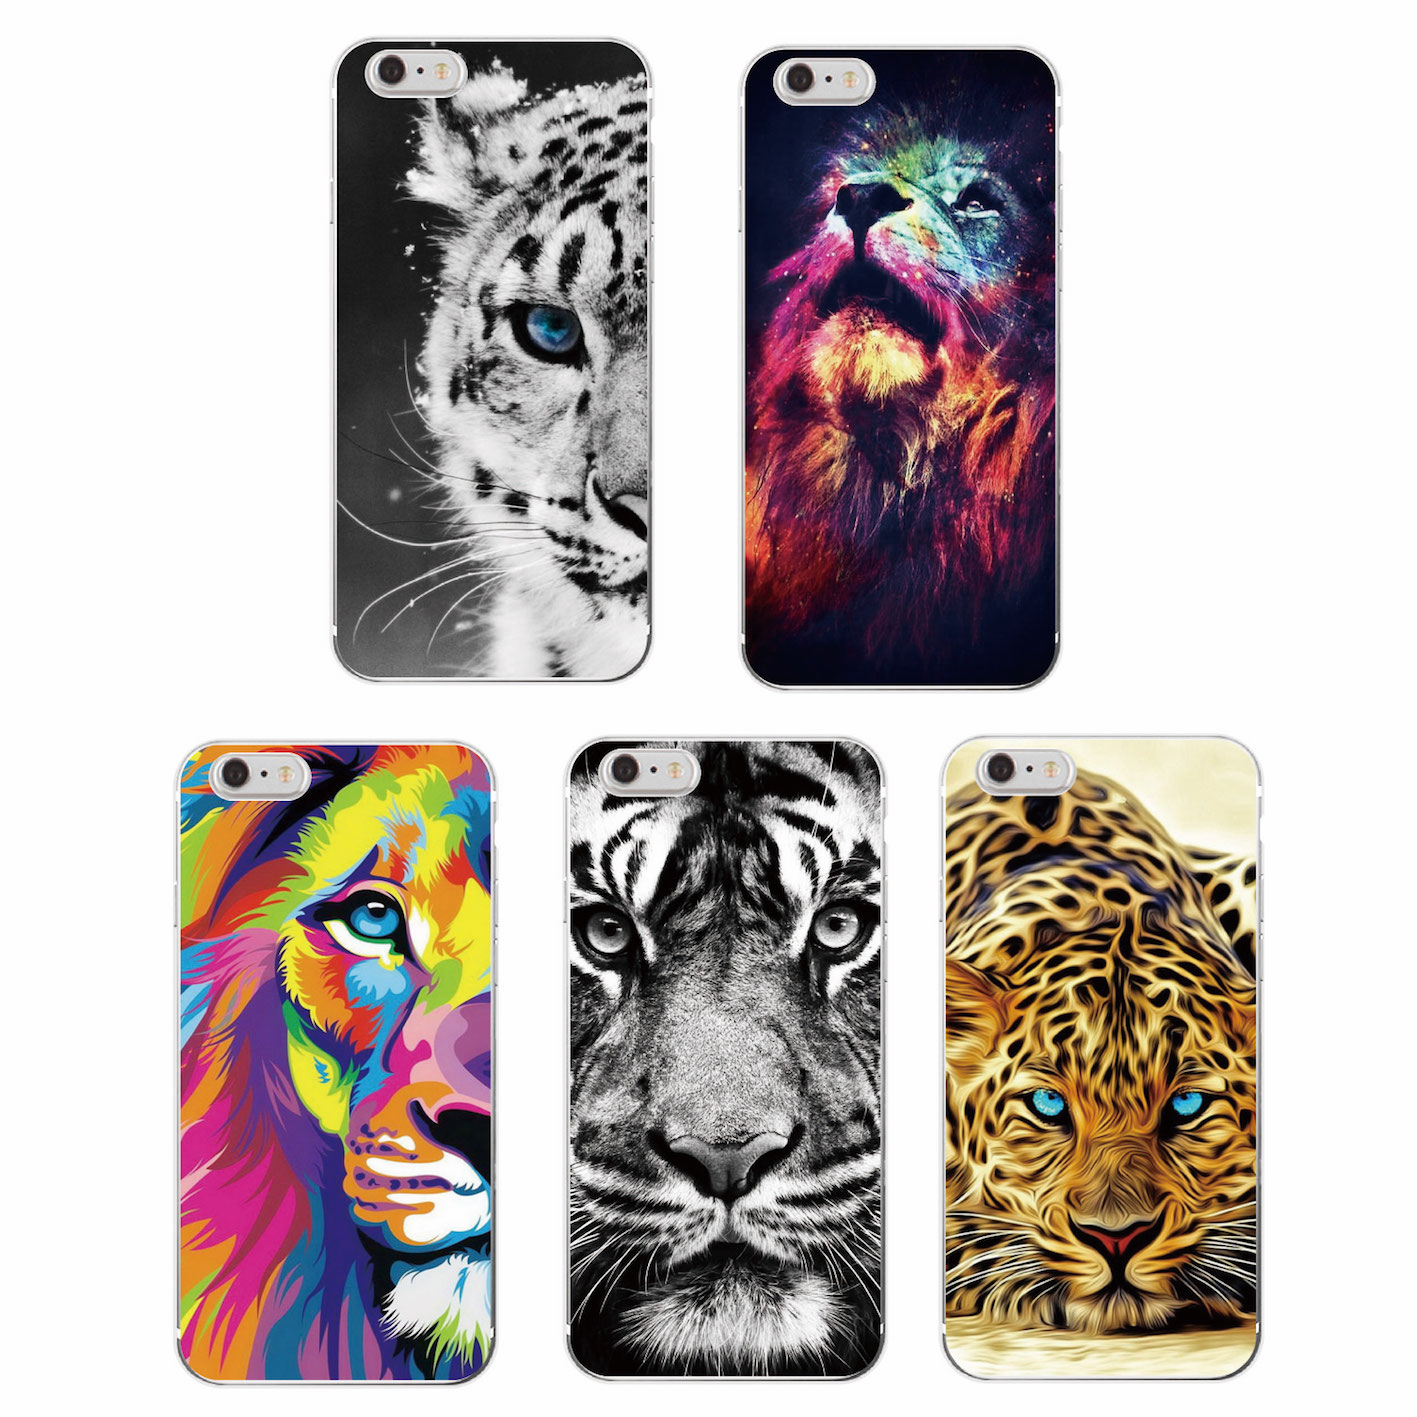 Moda Lion Tiger panther Leopard Soft Case Coque Fundas za iPhone 11 7 7Plus 6 6S 5S 8 8Plus X XS Max SAMSUNG GALSXY S8 S8P